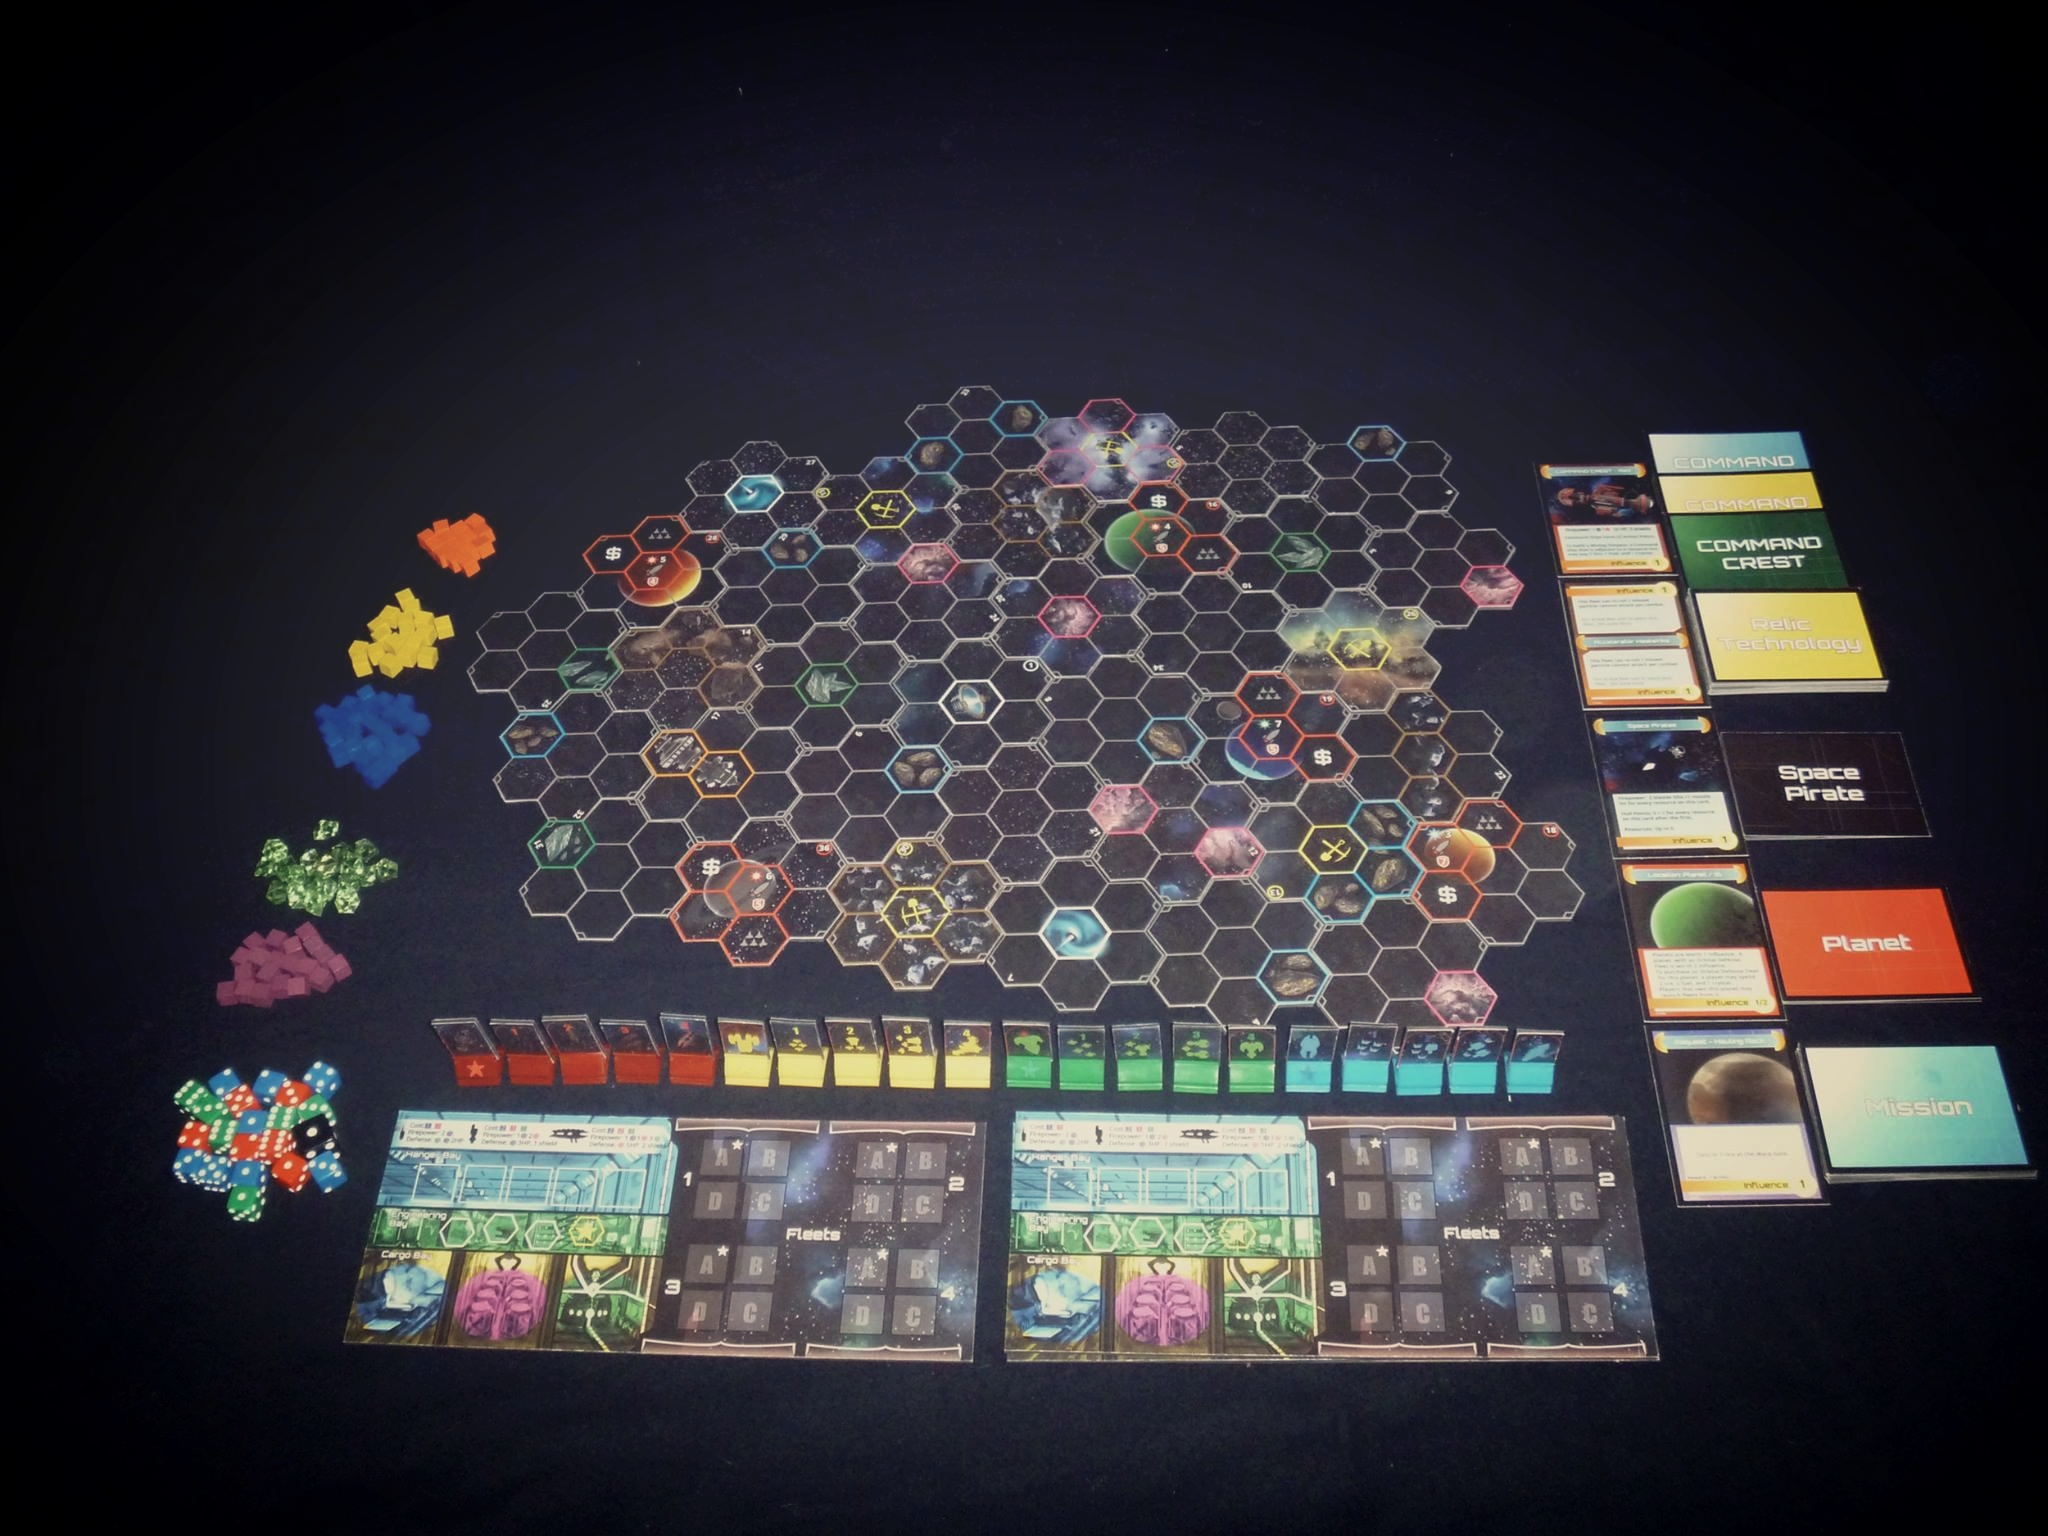 A prototype of the game and all its components